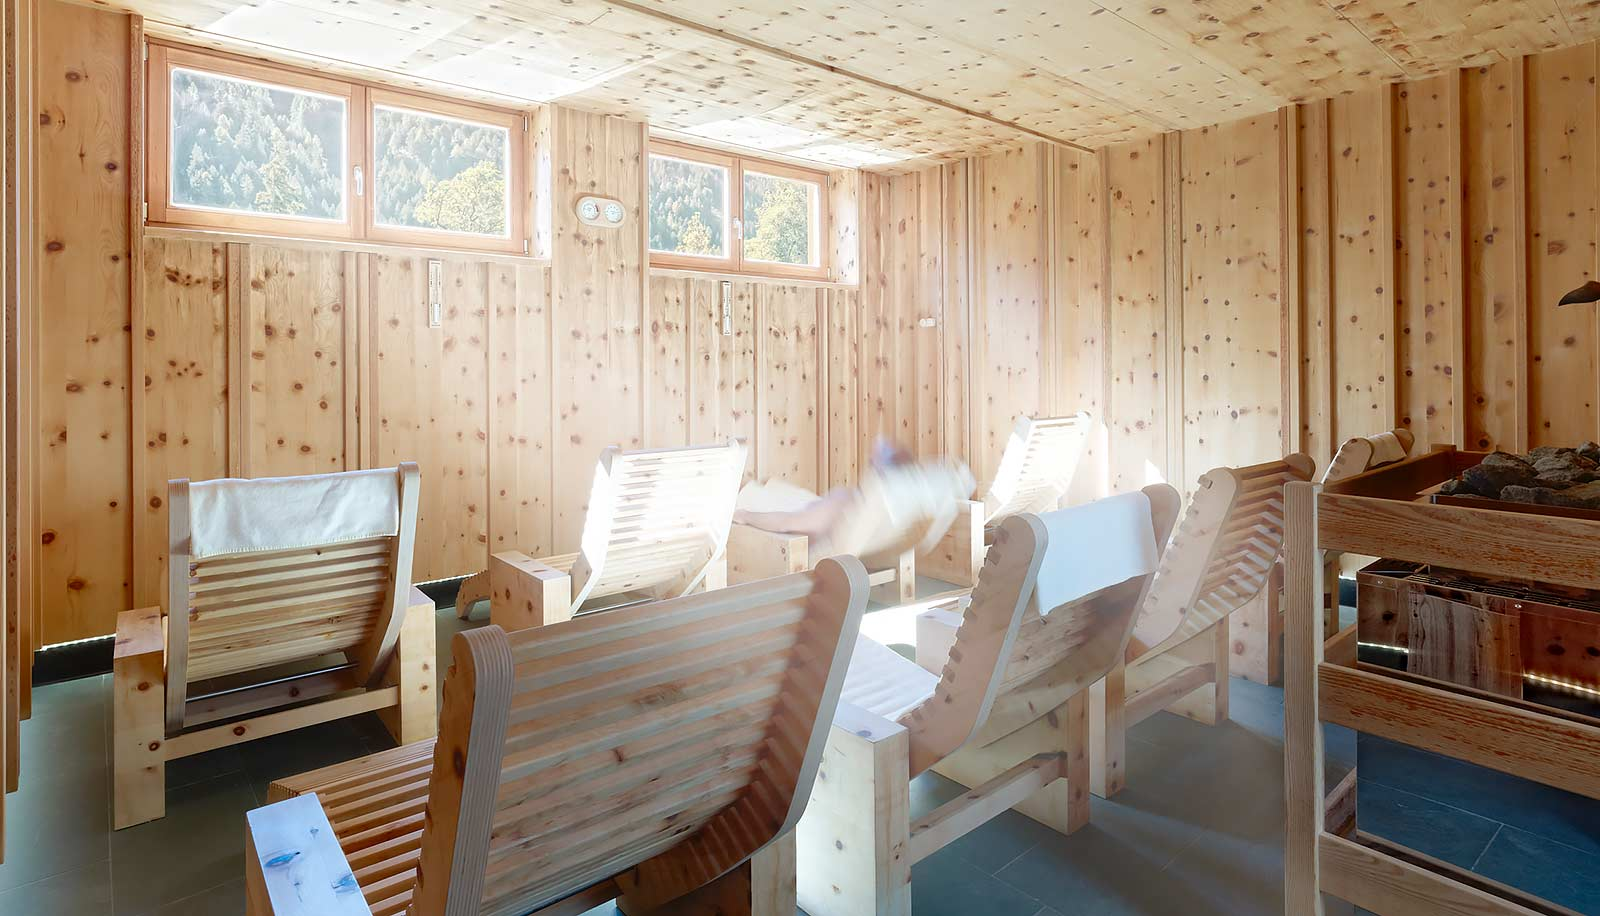 Sauna finlandese con lettini in legno all'Arosea Life Balance Hotel in Val d'Ultimo